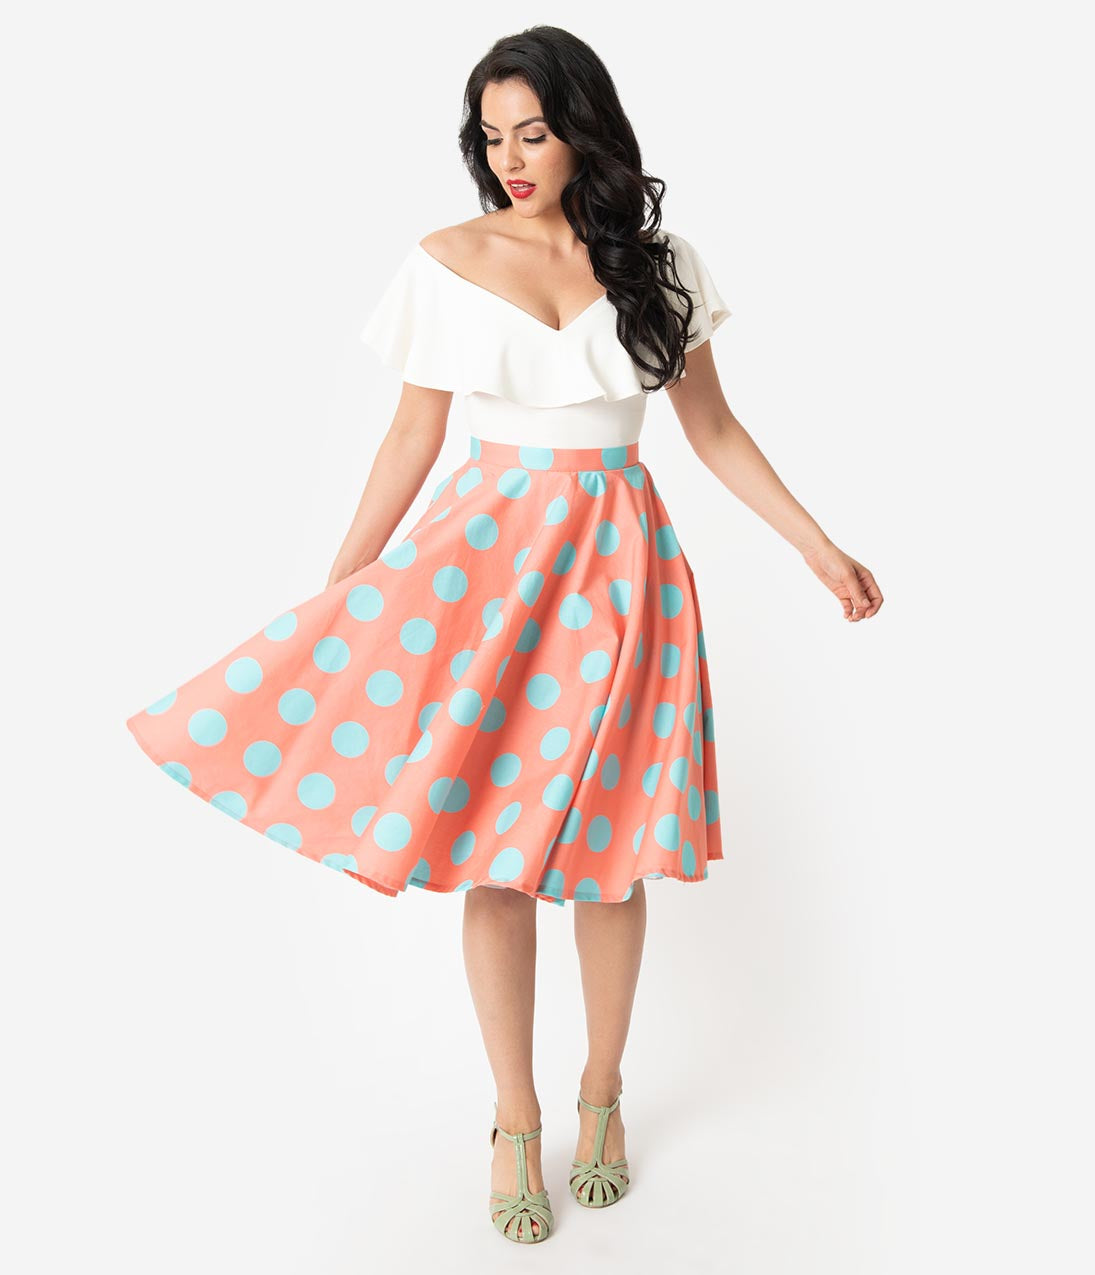 50s Skirt Styles | Poodle Skirts, Circle Skirts, Pencil Skirts 1950S Style Coral Pink  Turquoise Polka Dot Cotton Swing Skirt $58.00 AT vintagedancer.com